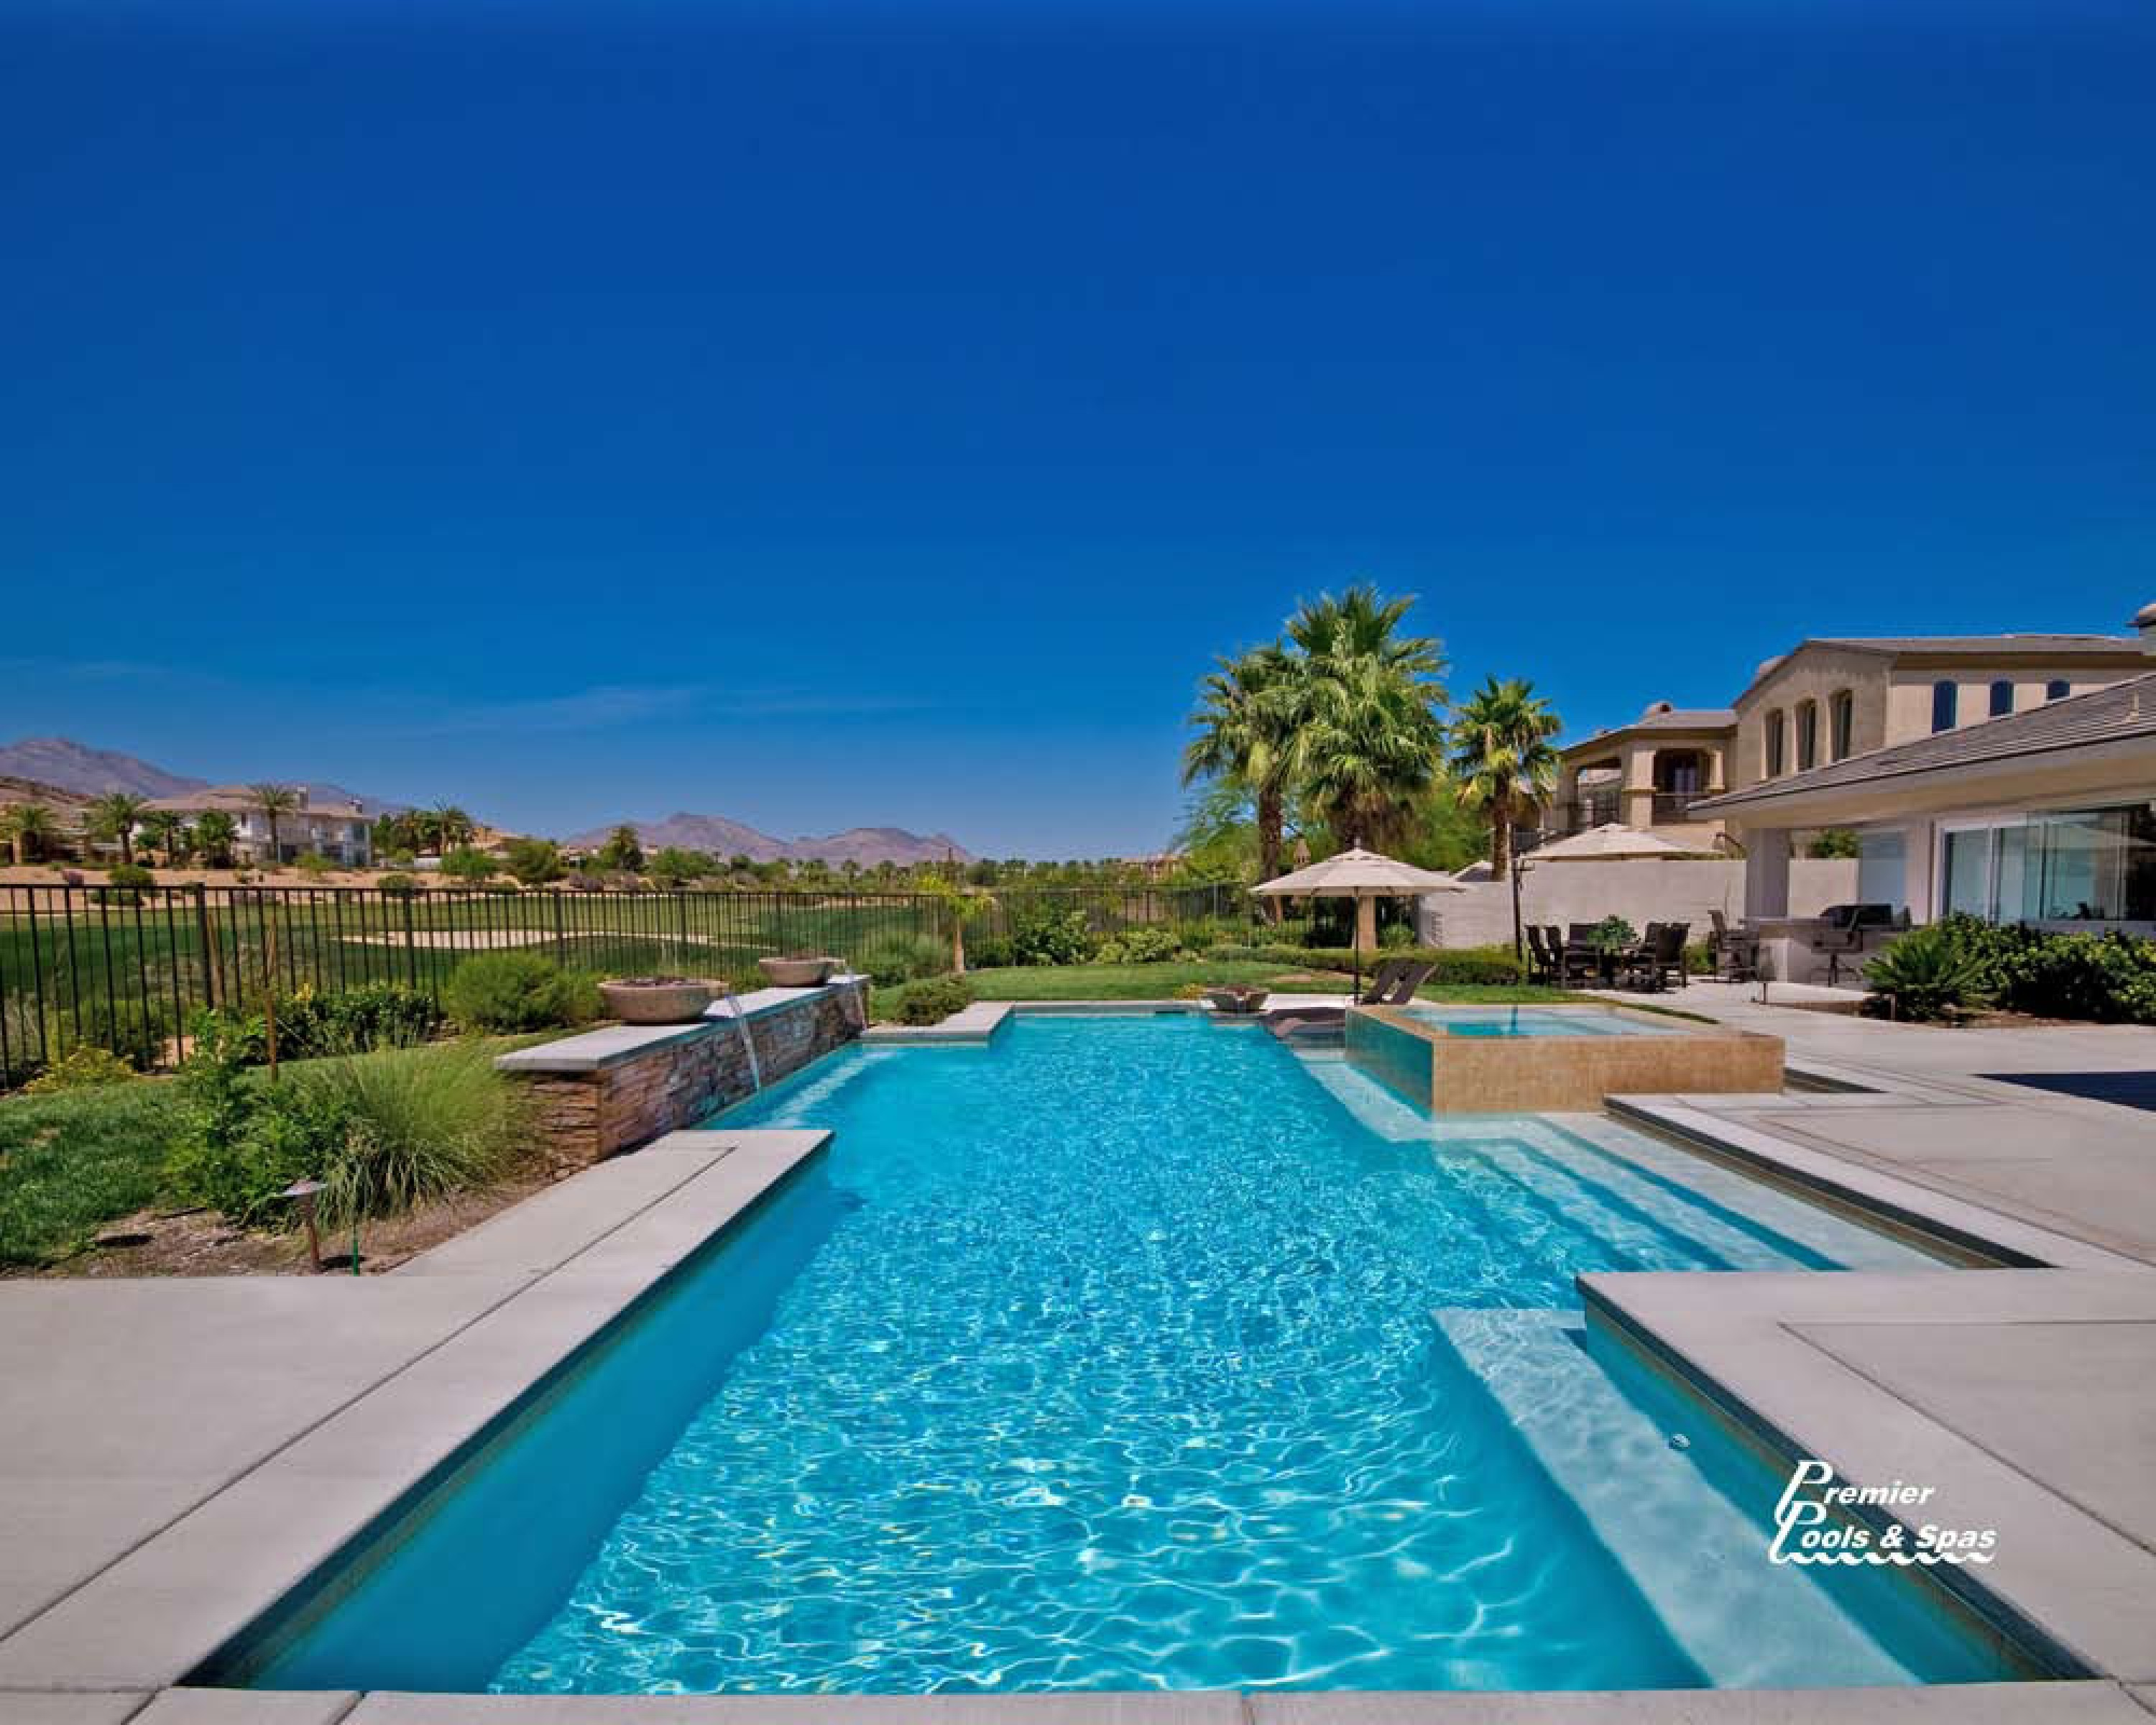 Premier pools and spas in corona ca 92881 for Premier pools